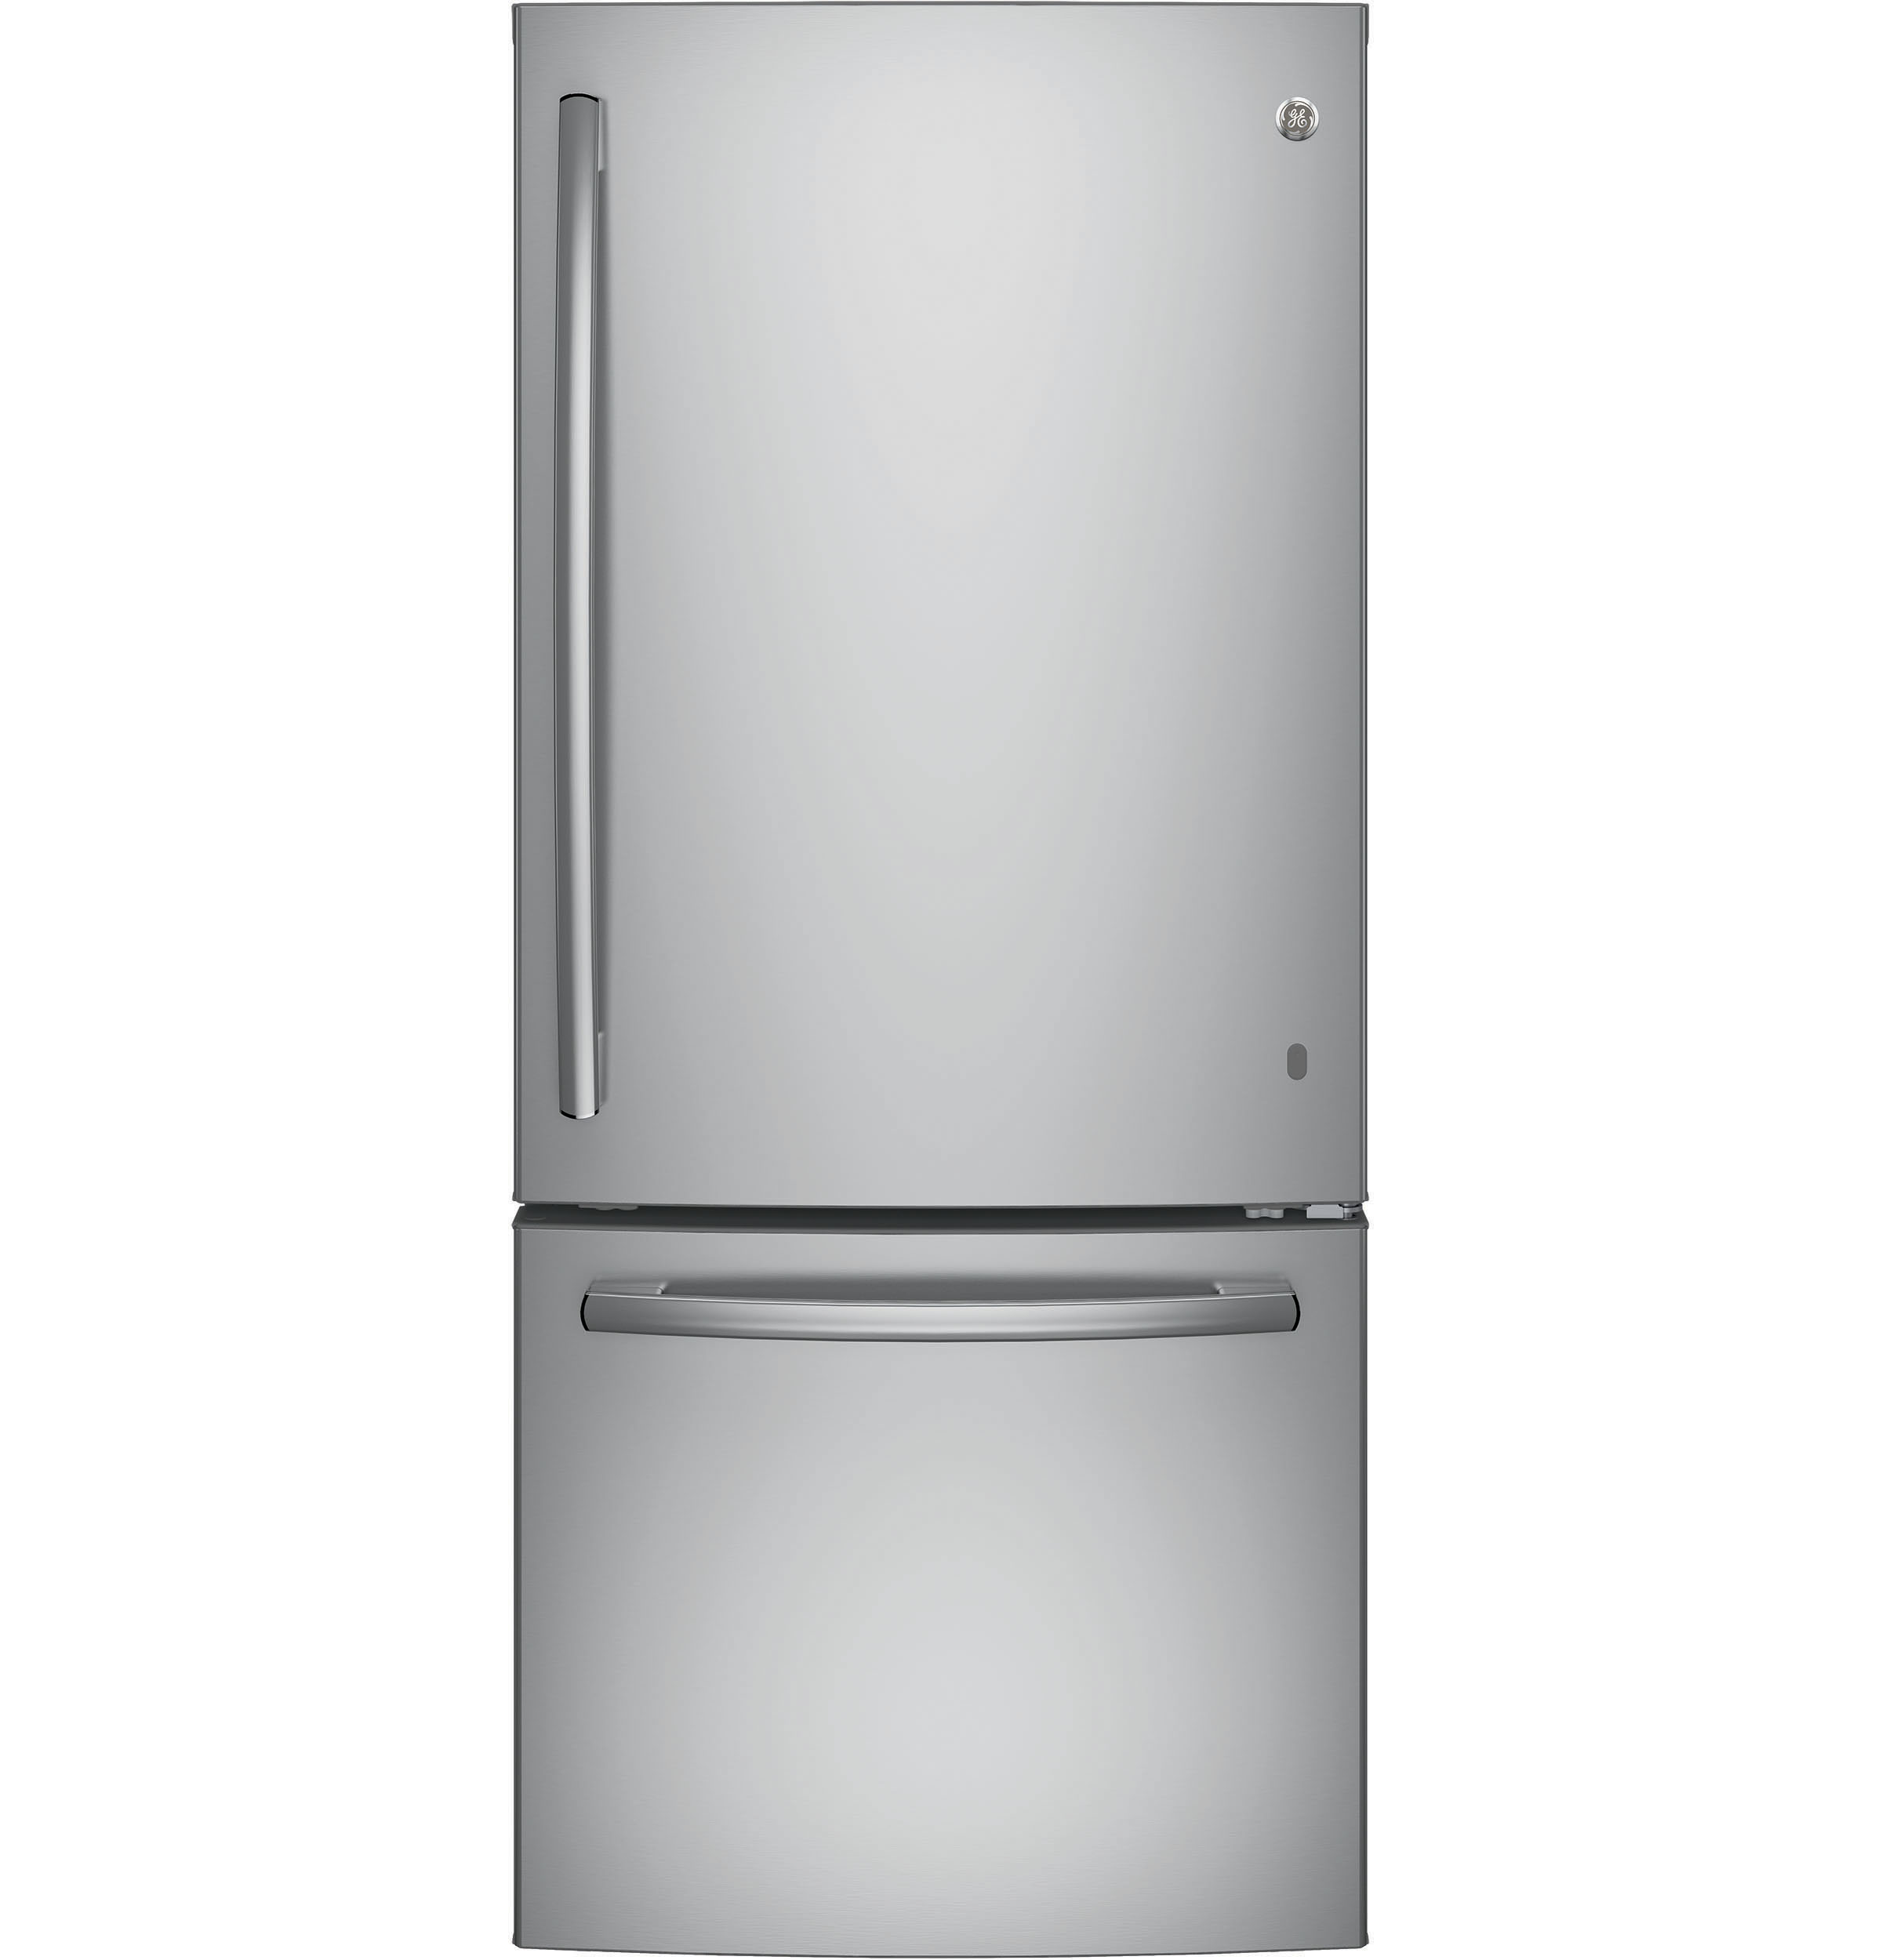 GE GE® ENERGY STAR® 21.0 Cu. Ft. Bottom-Freezer Refrigerator